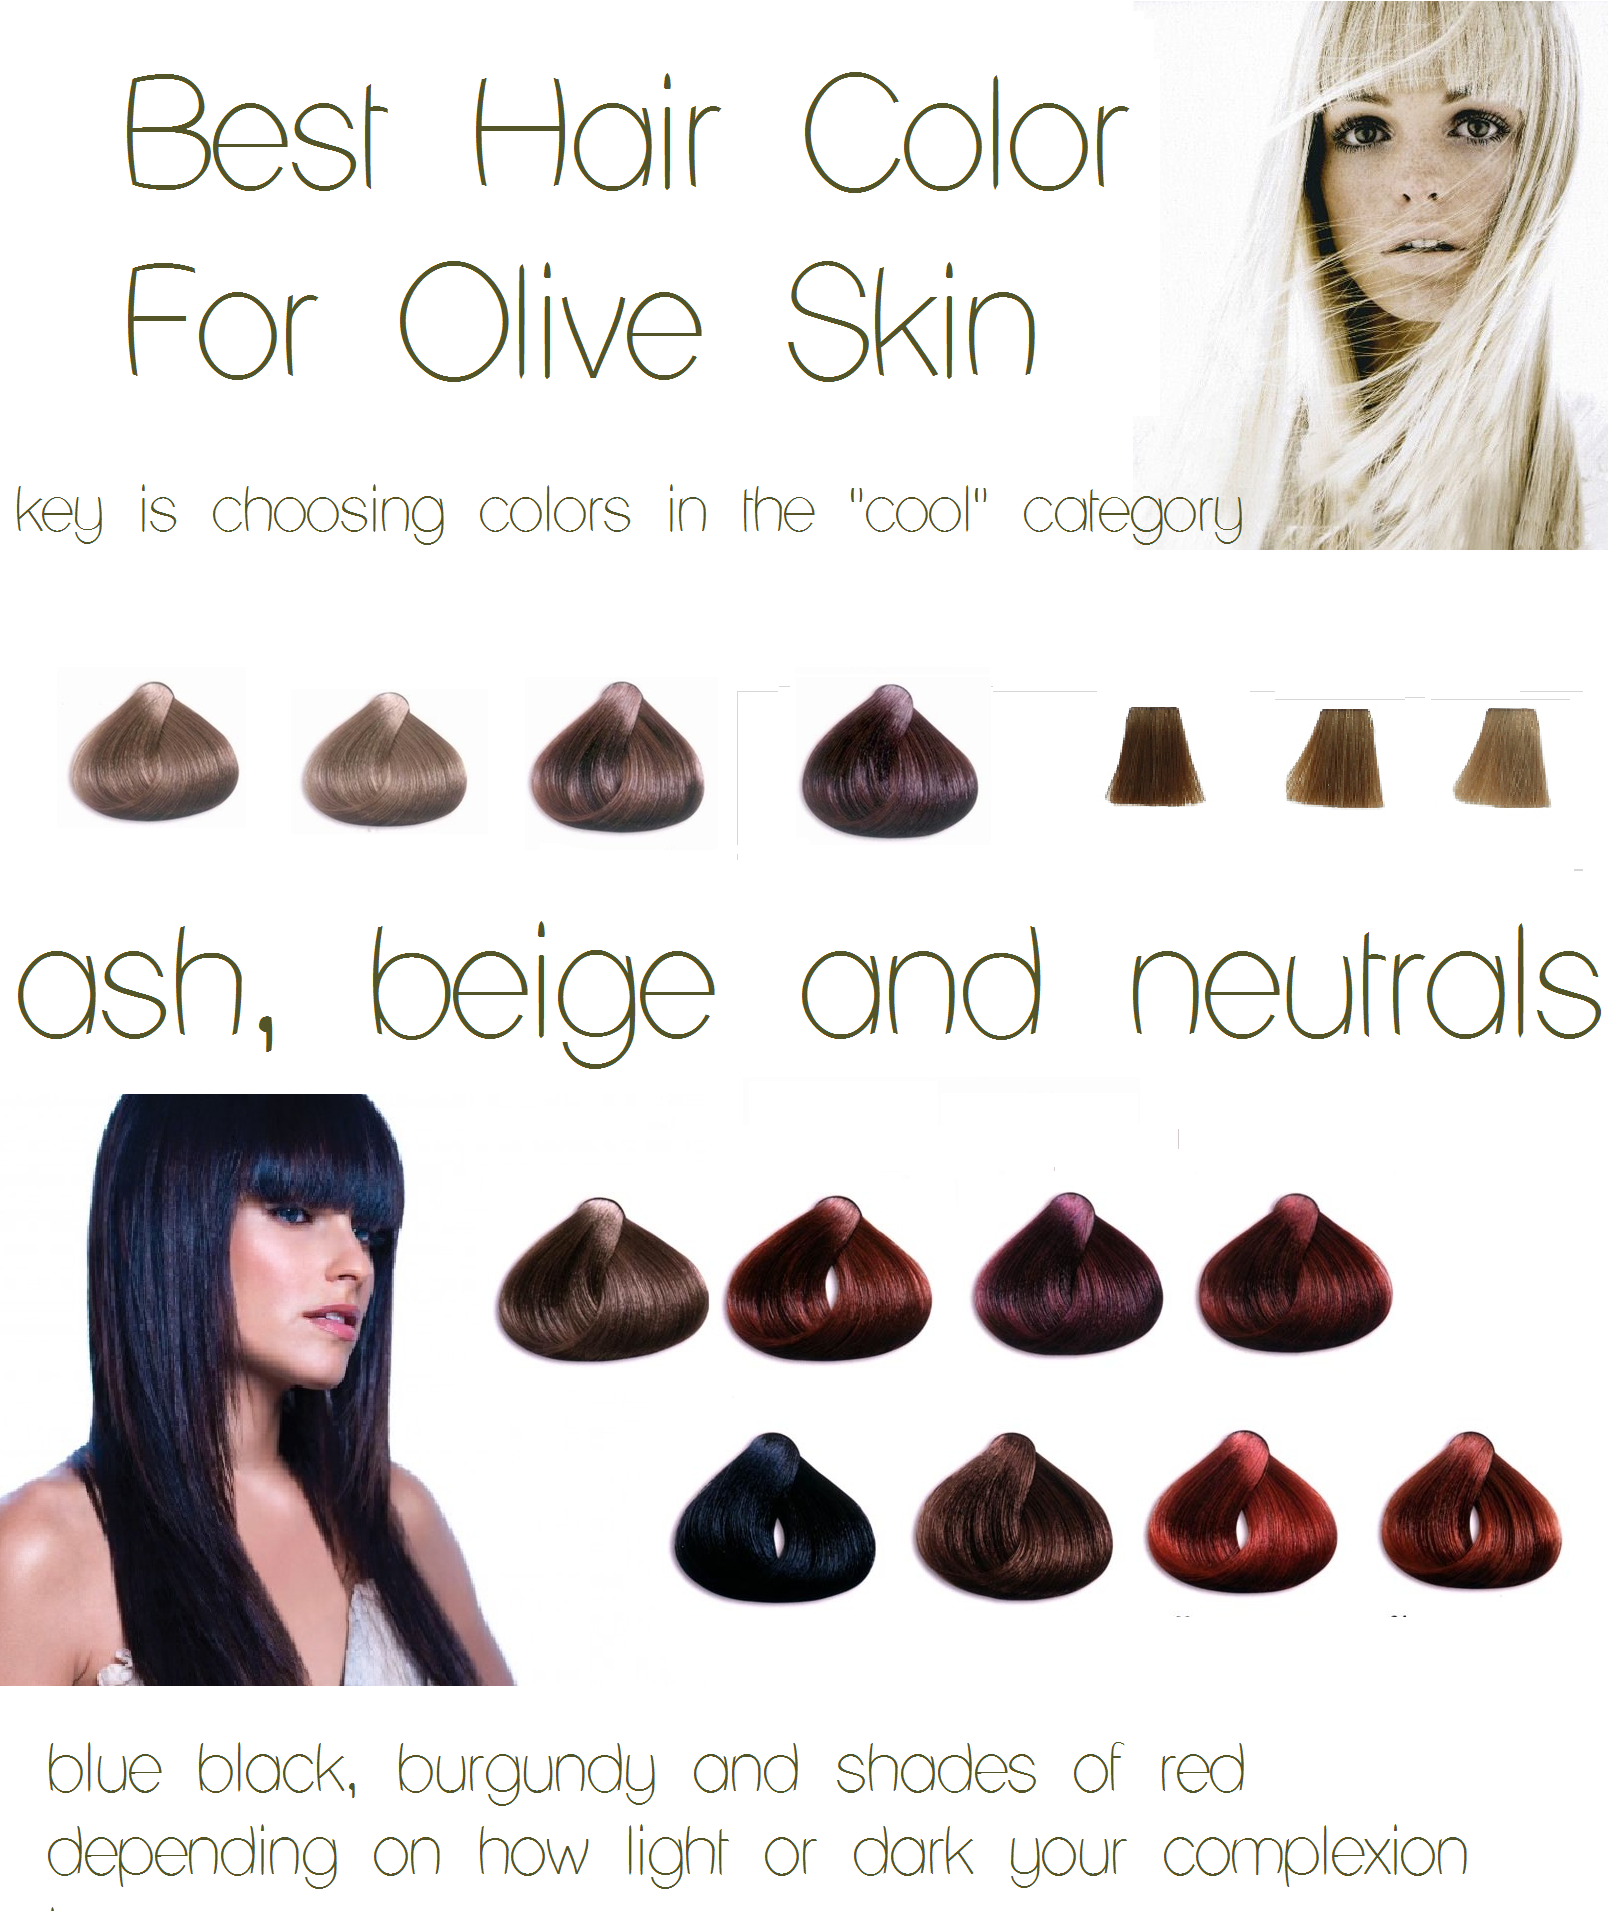 Hair Color Olive Skin Ash Beige Neutrals Burgundy Blue Black Red Light Or Dar